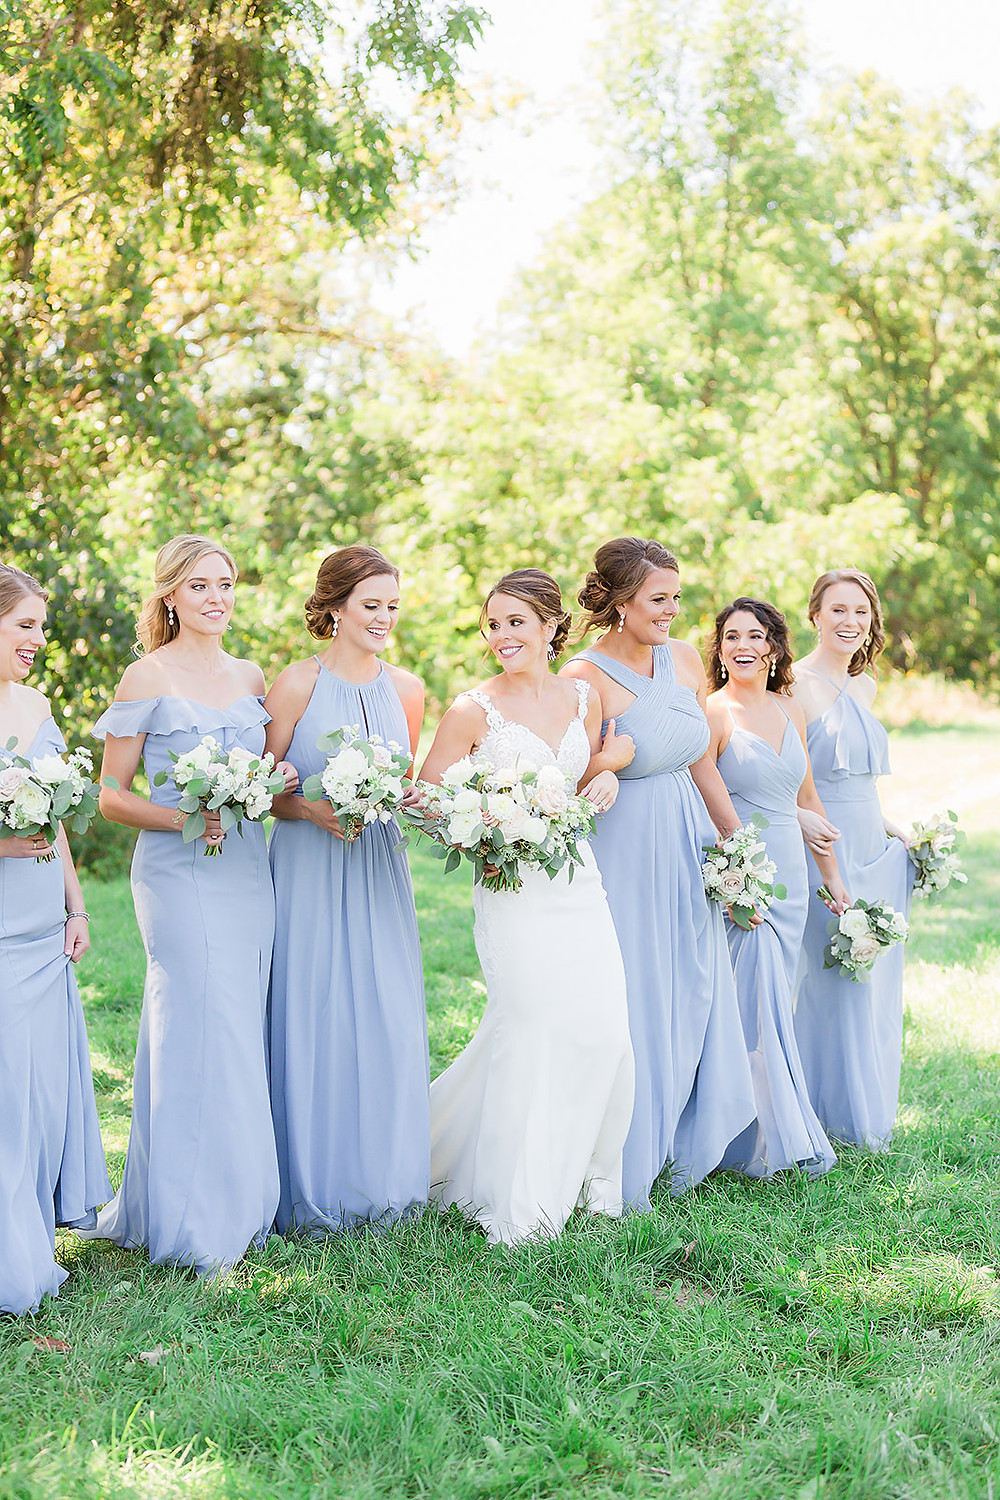 Bride and maids in light blue with Studio Bloom Iowa wedding flowers